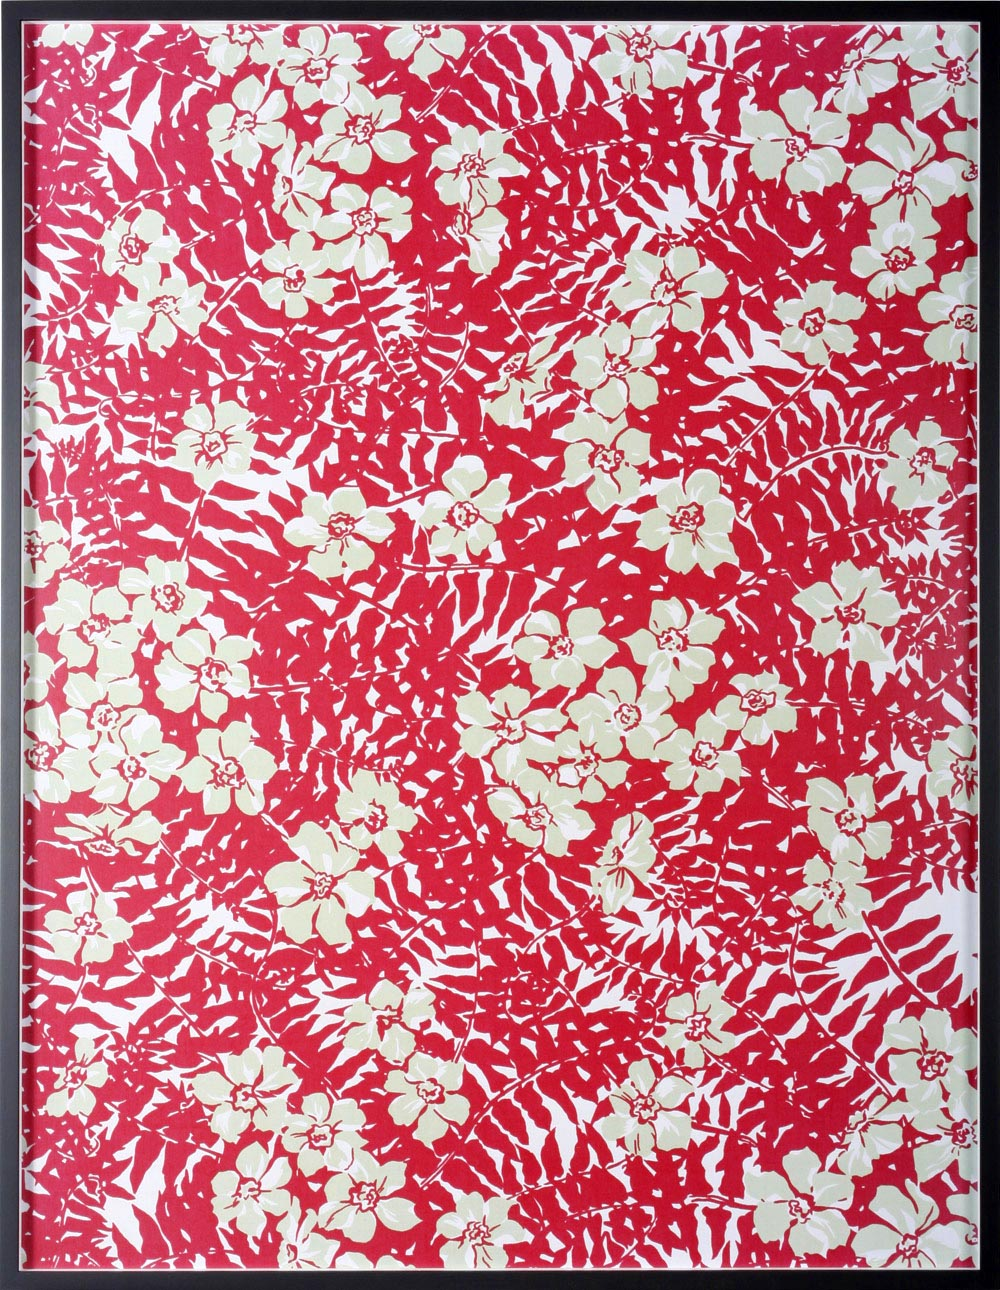 "Annette Kelm Big Print #2 ( Maui Fern cotton ""mainsail cloth"" fall 1949 design Dorothy Draper, courtesy Schumacher &Co) 2007 C-Print: 131.5 x 100.5 cm"